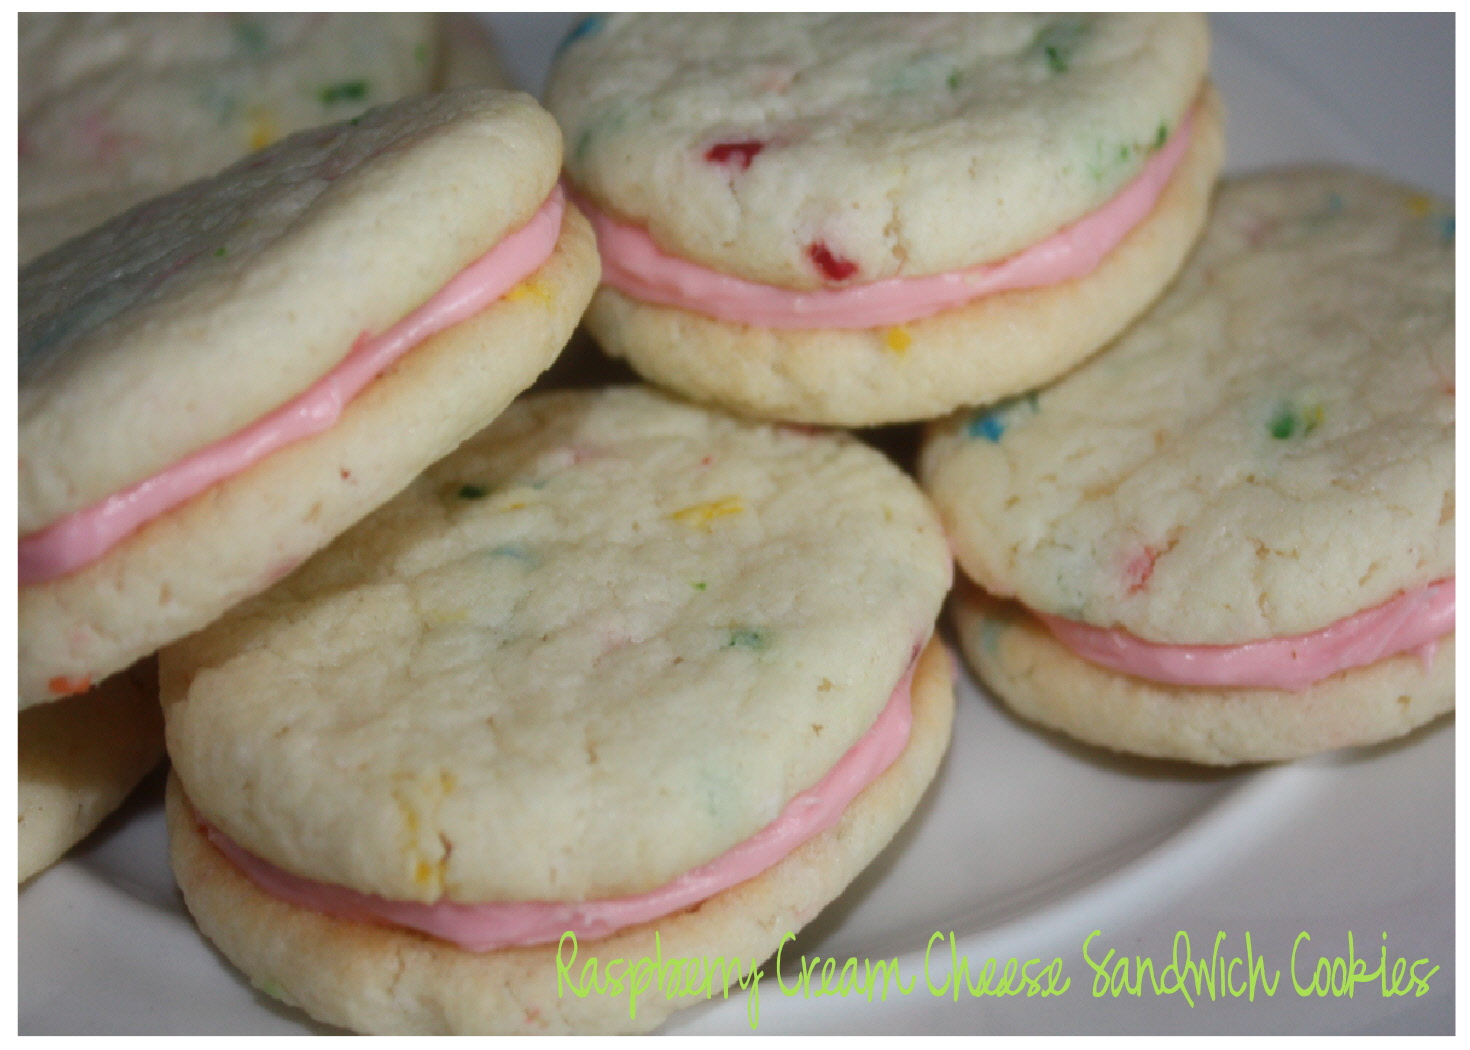 just Sweet and Simple: Raspberry Cream Cheese Sandwich Cookies